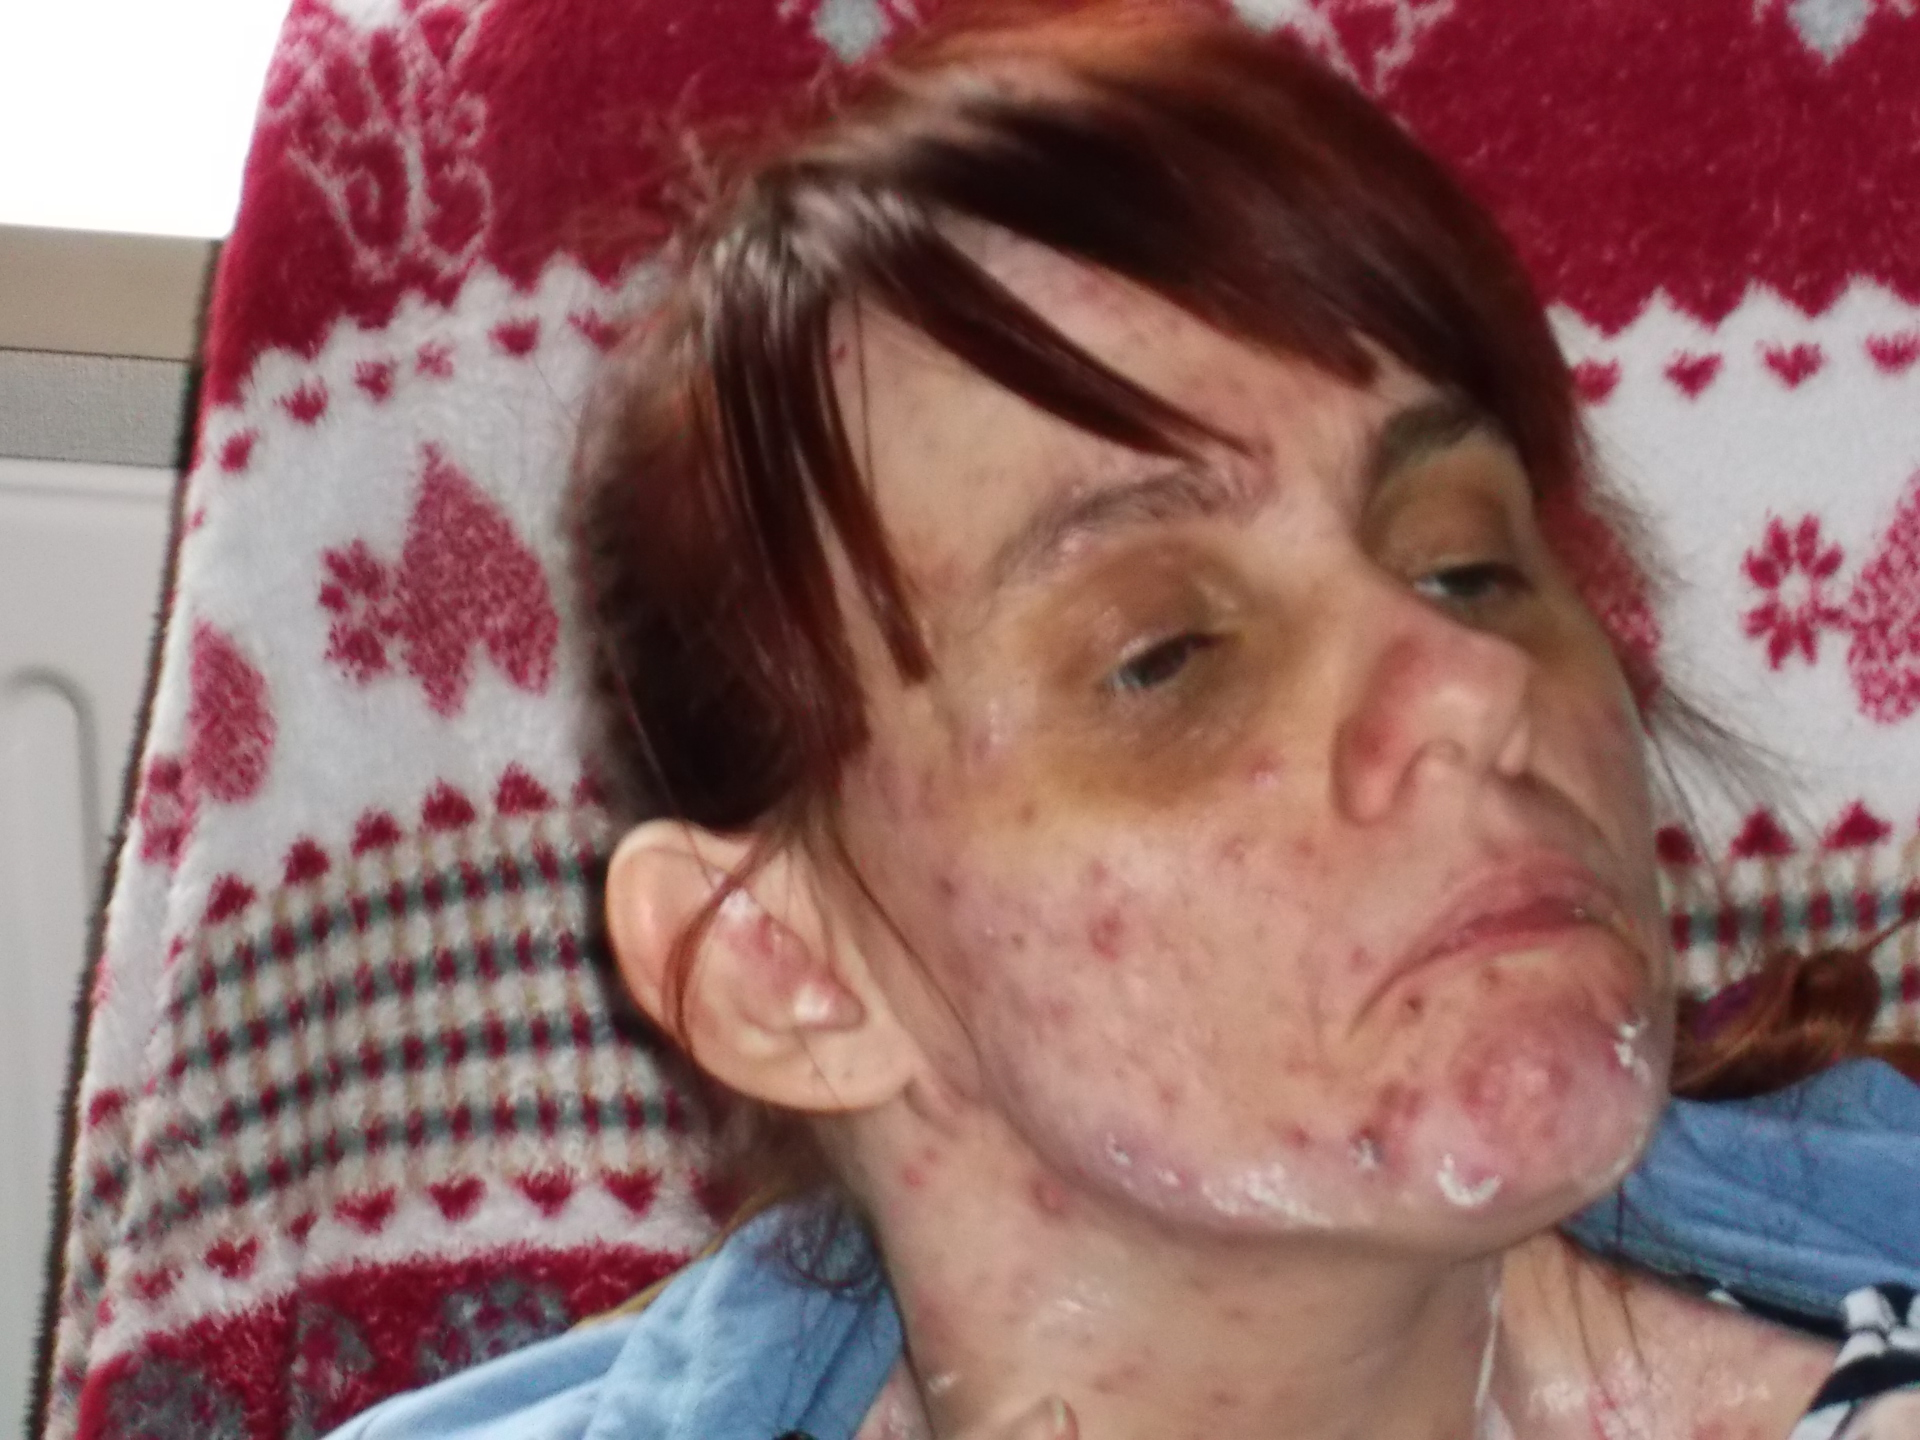 A photograph of a person with chicken pox